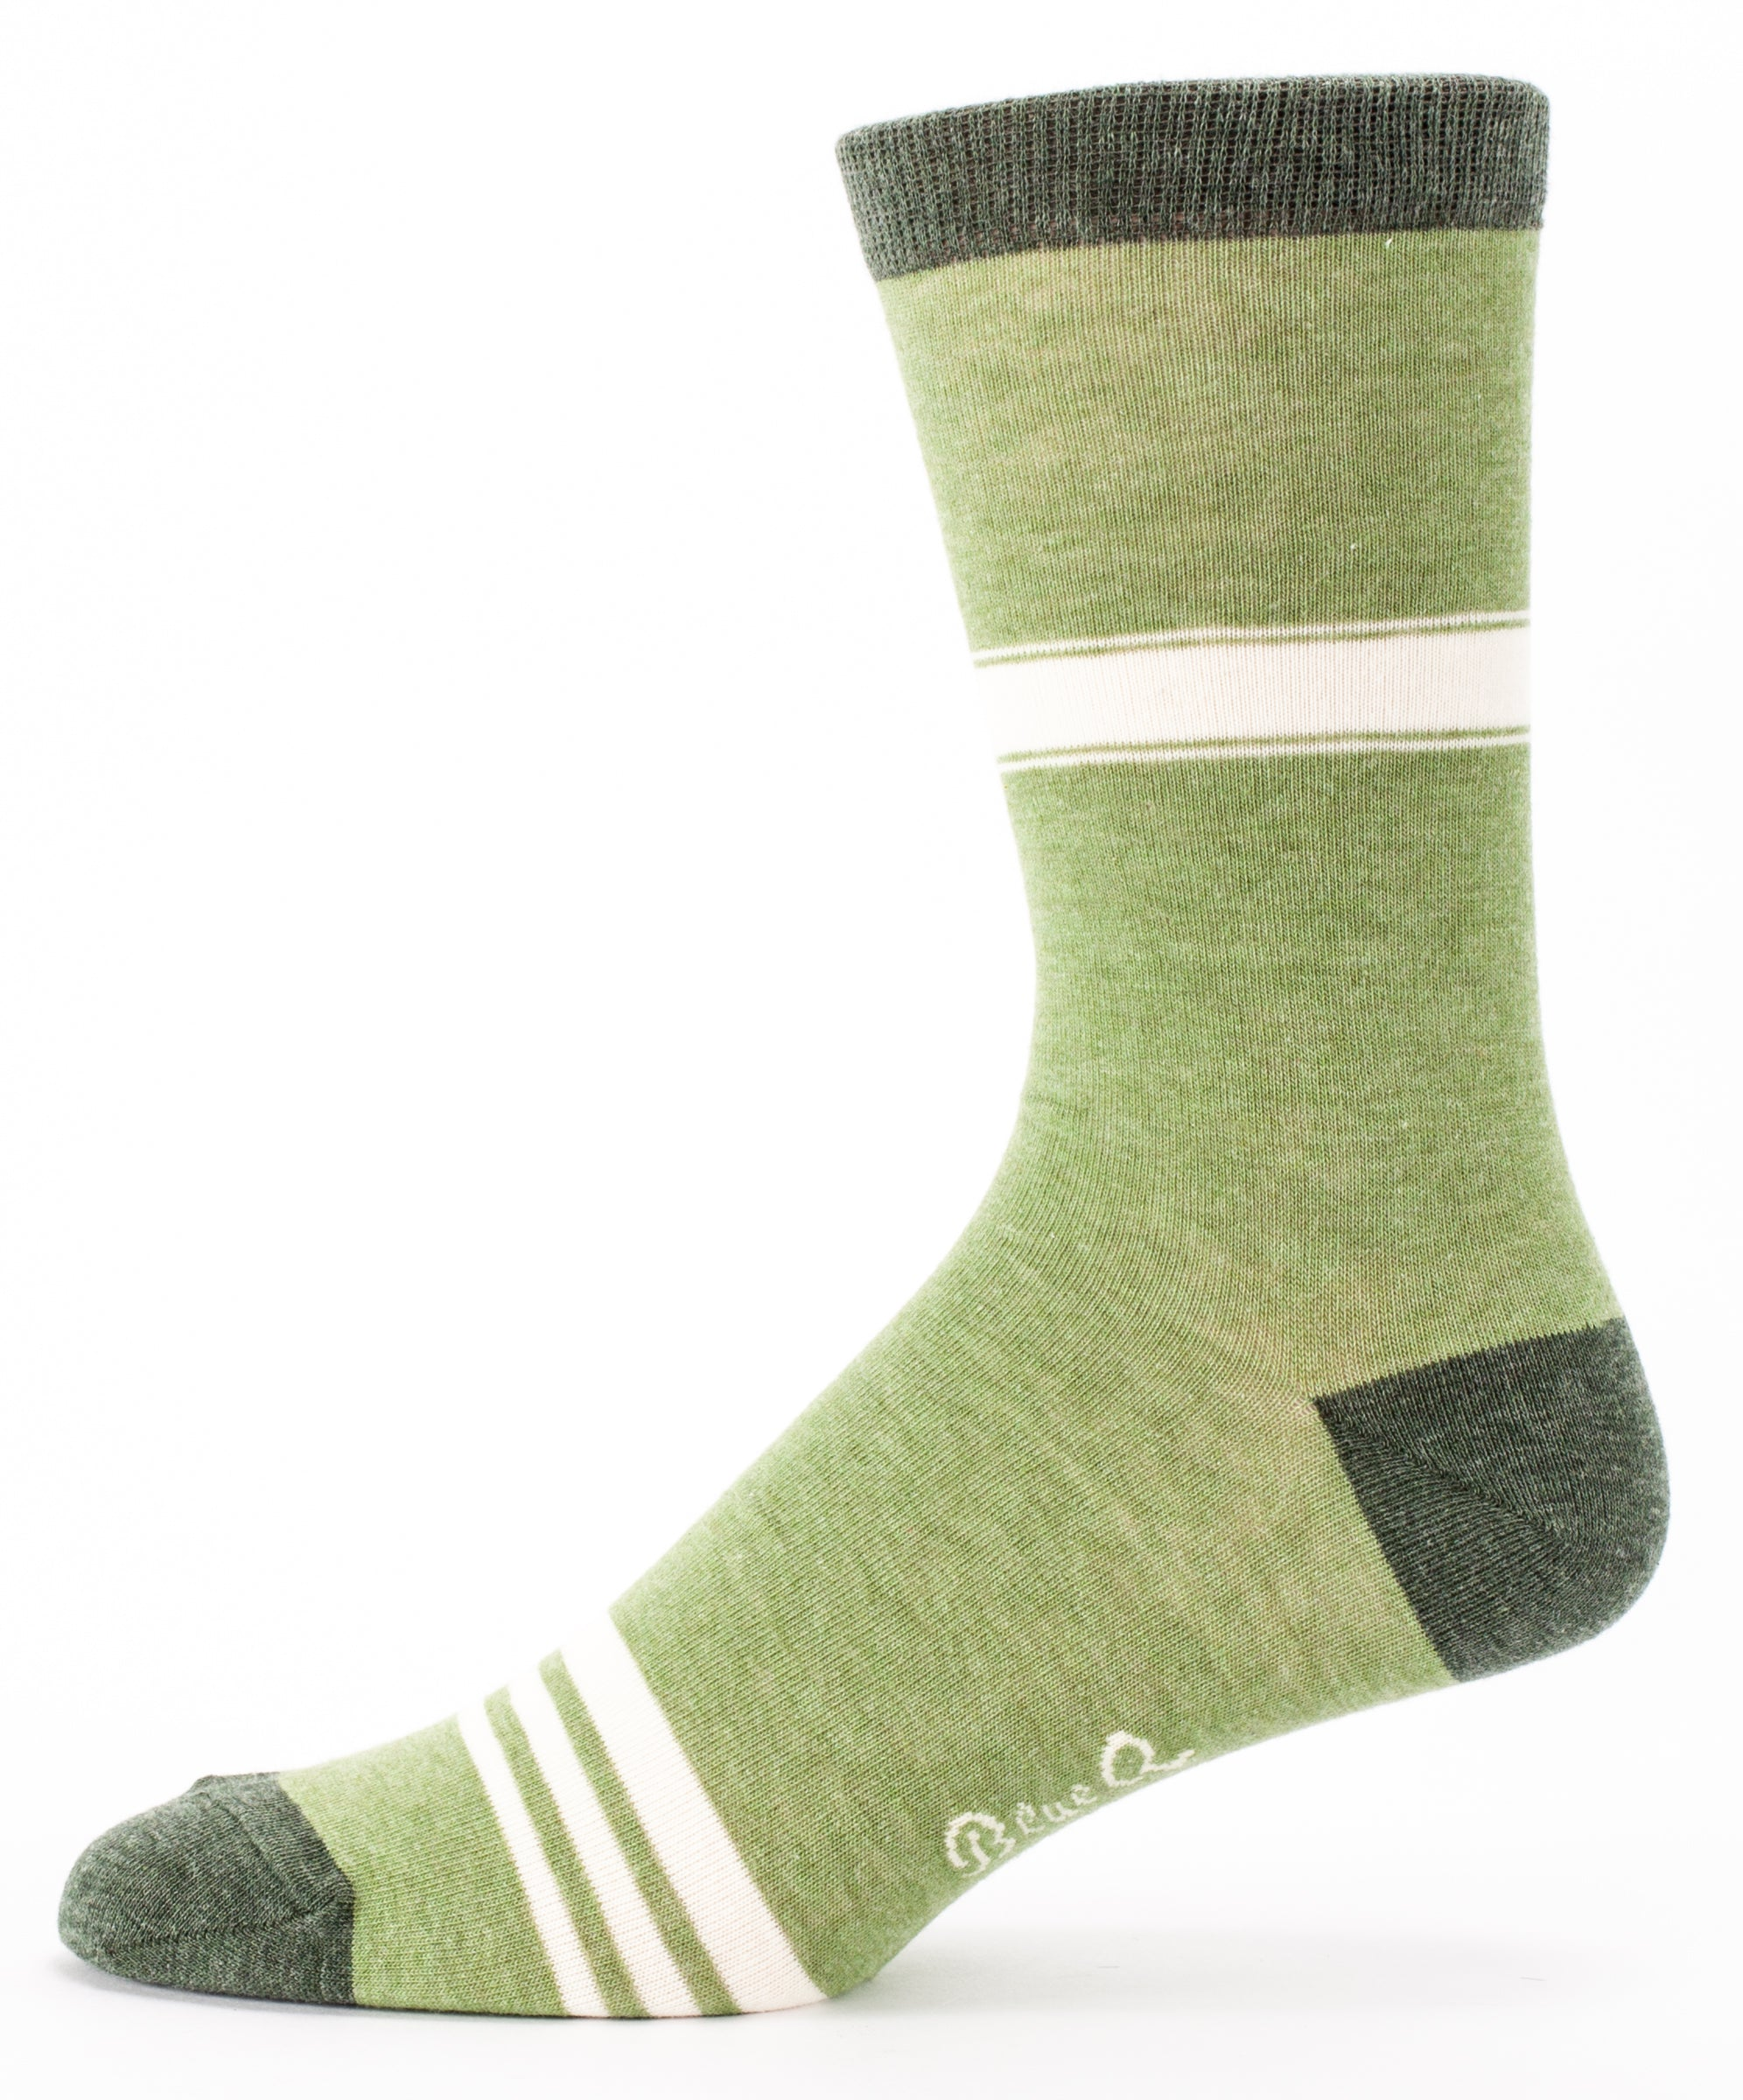 BlueQ Men's Crew Sock: Adult in Training